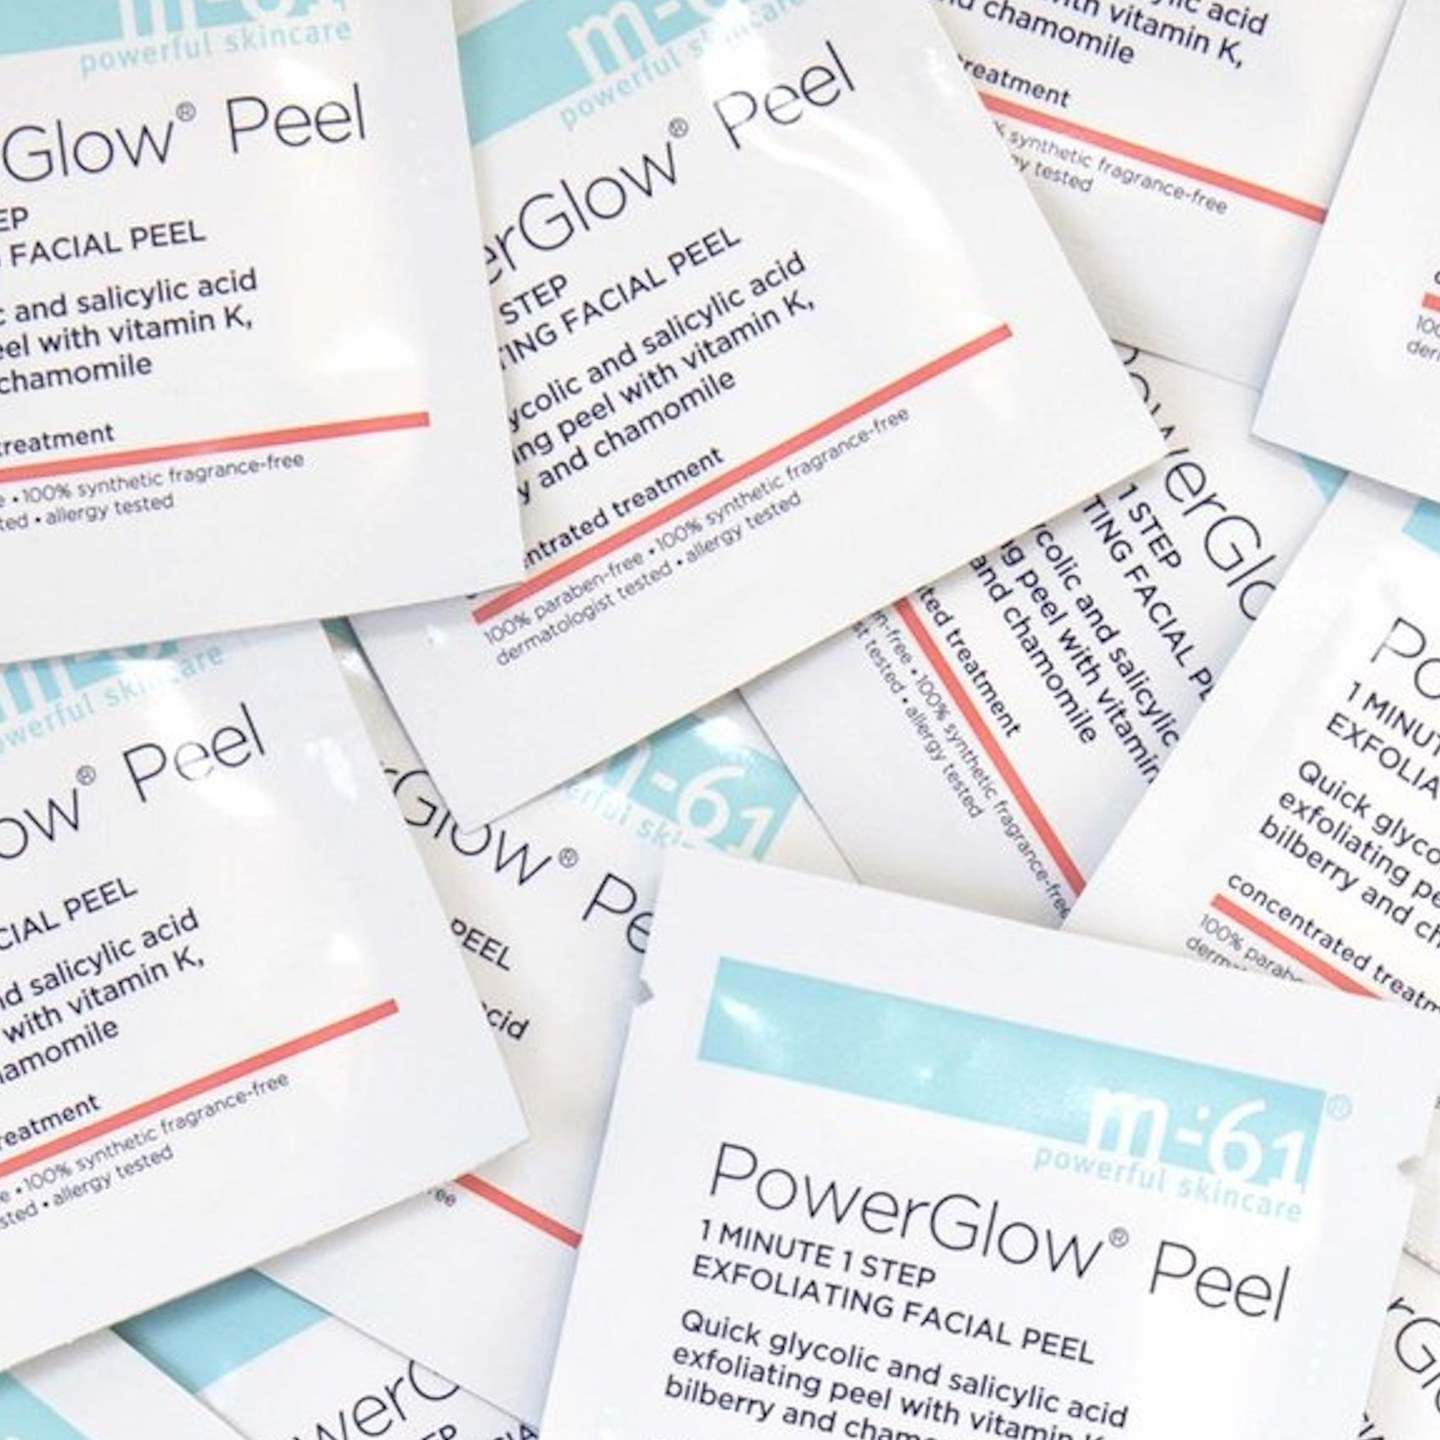 A Box of Bluemercury's M-61 PowerGlow Peel Is Sold Every 8 Seconds